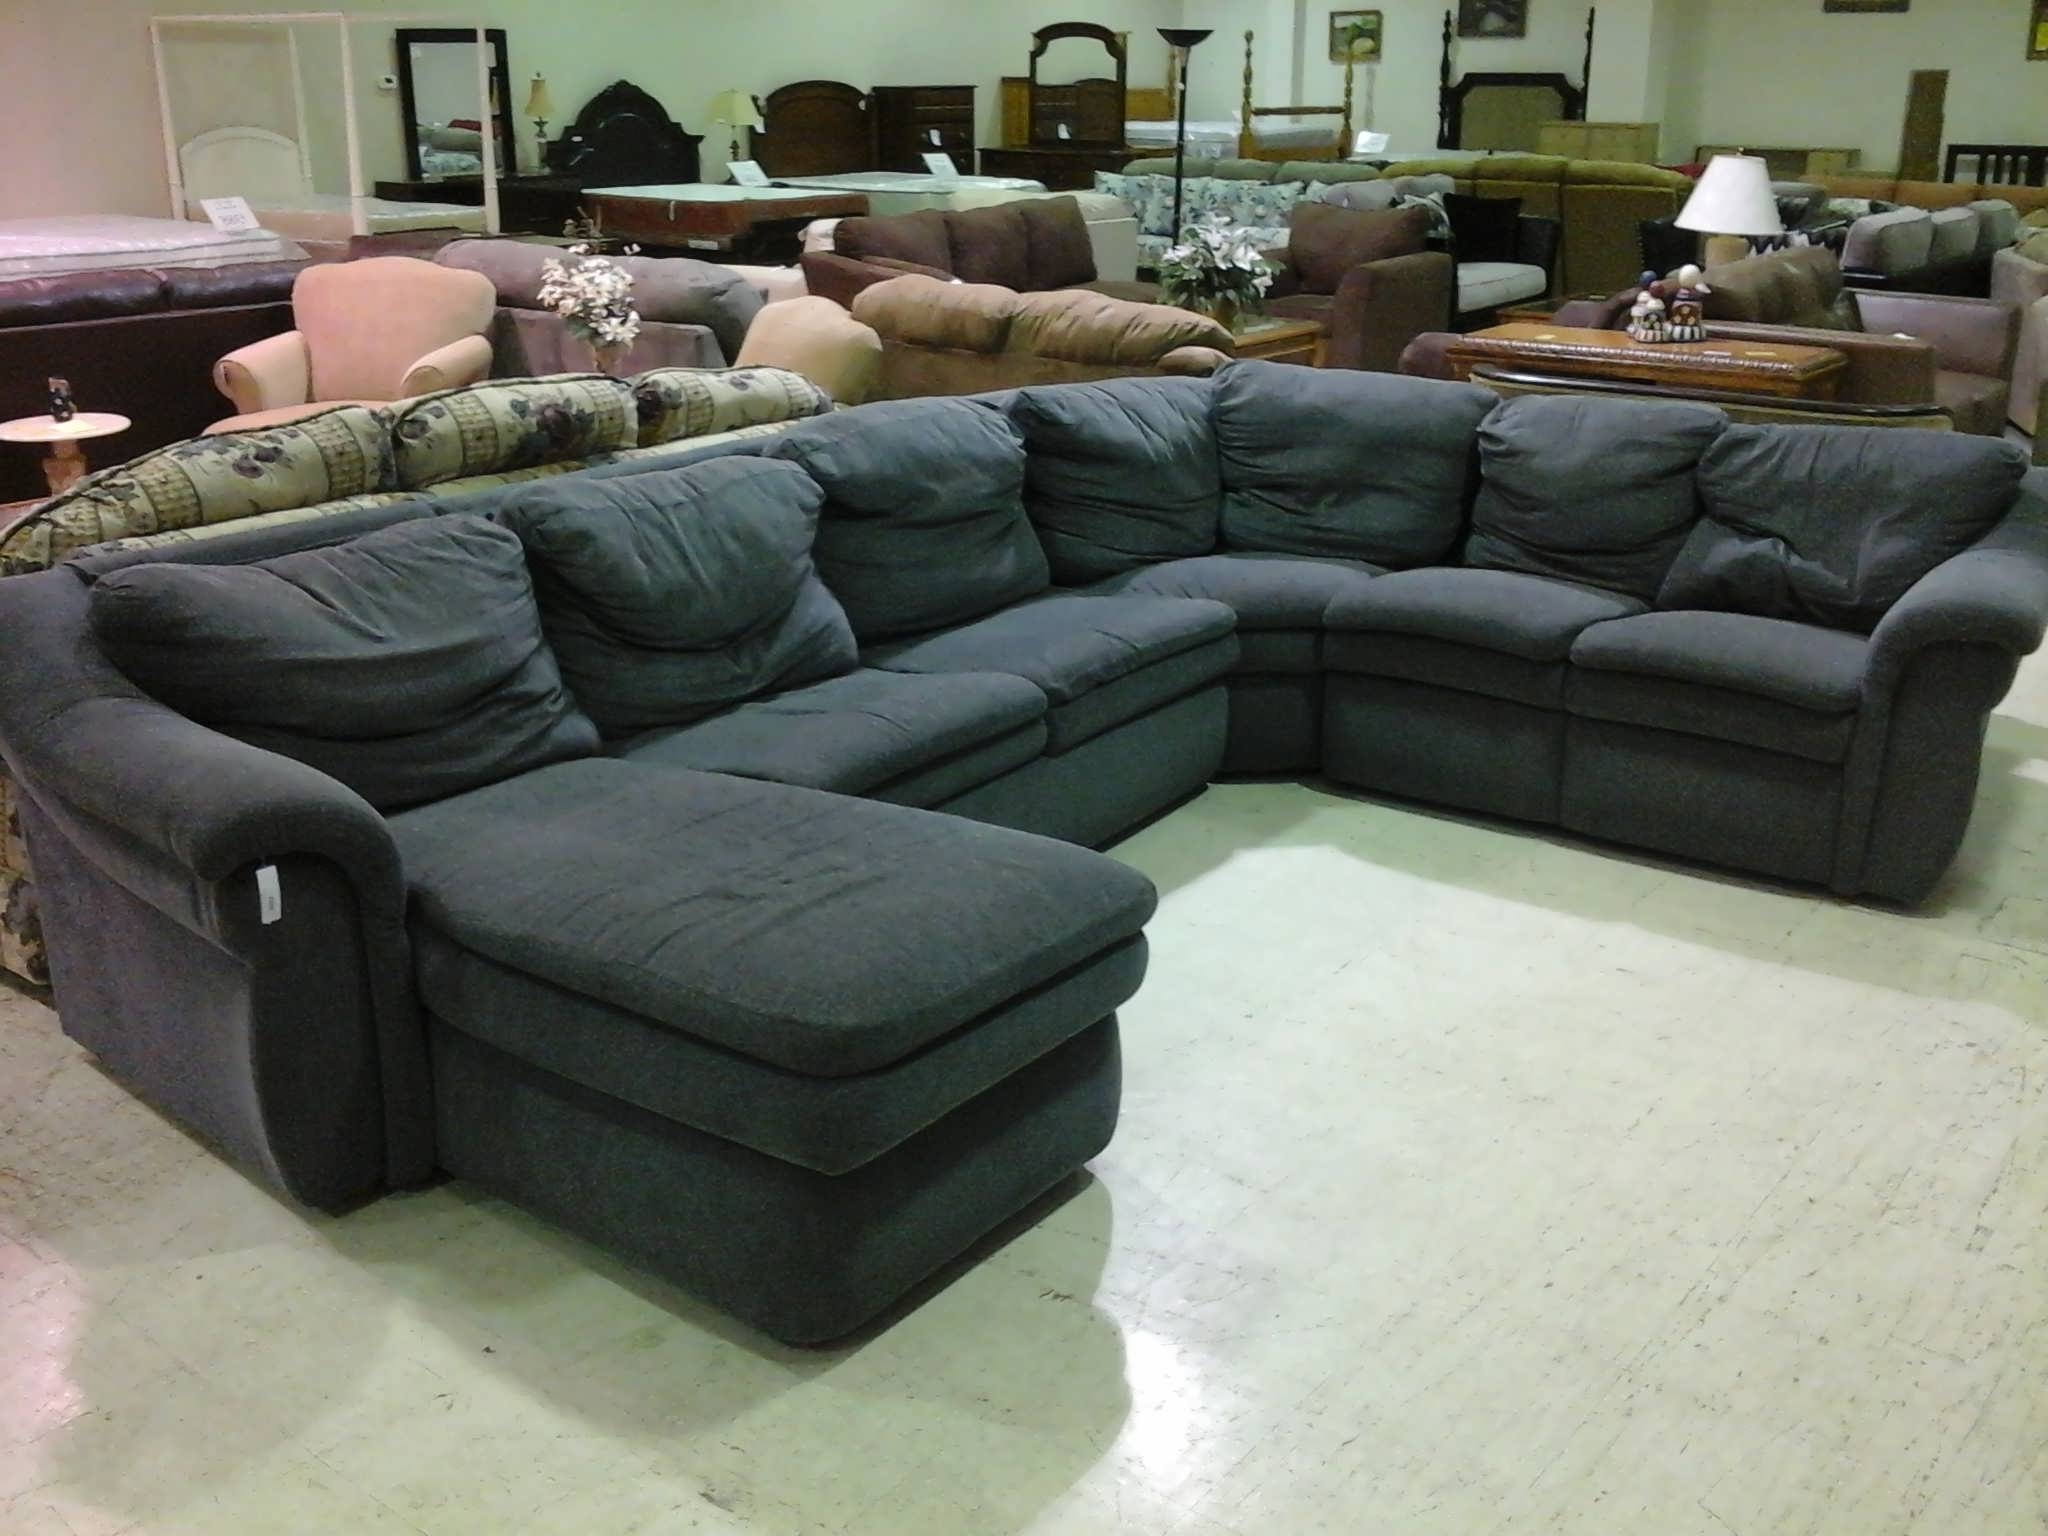 Trendy Sofa : Large Sectional Grey Leather Sectional Couch With Chaise With Regard To Leather Sectional Sleeper Sofas With Chaise (View 5 of 15)